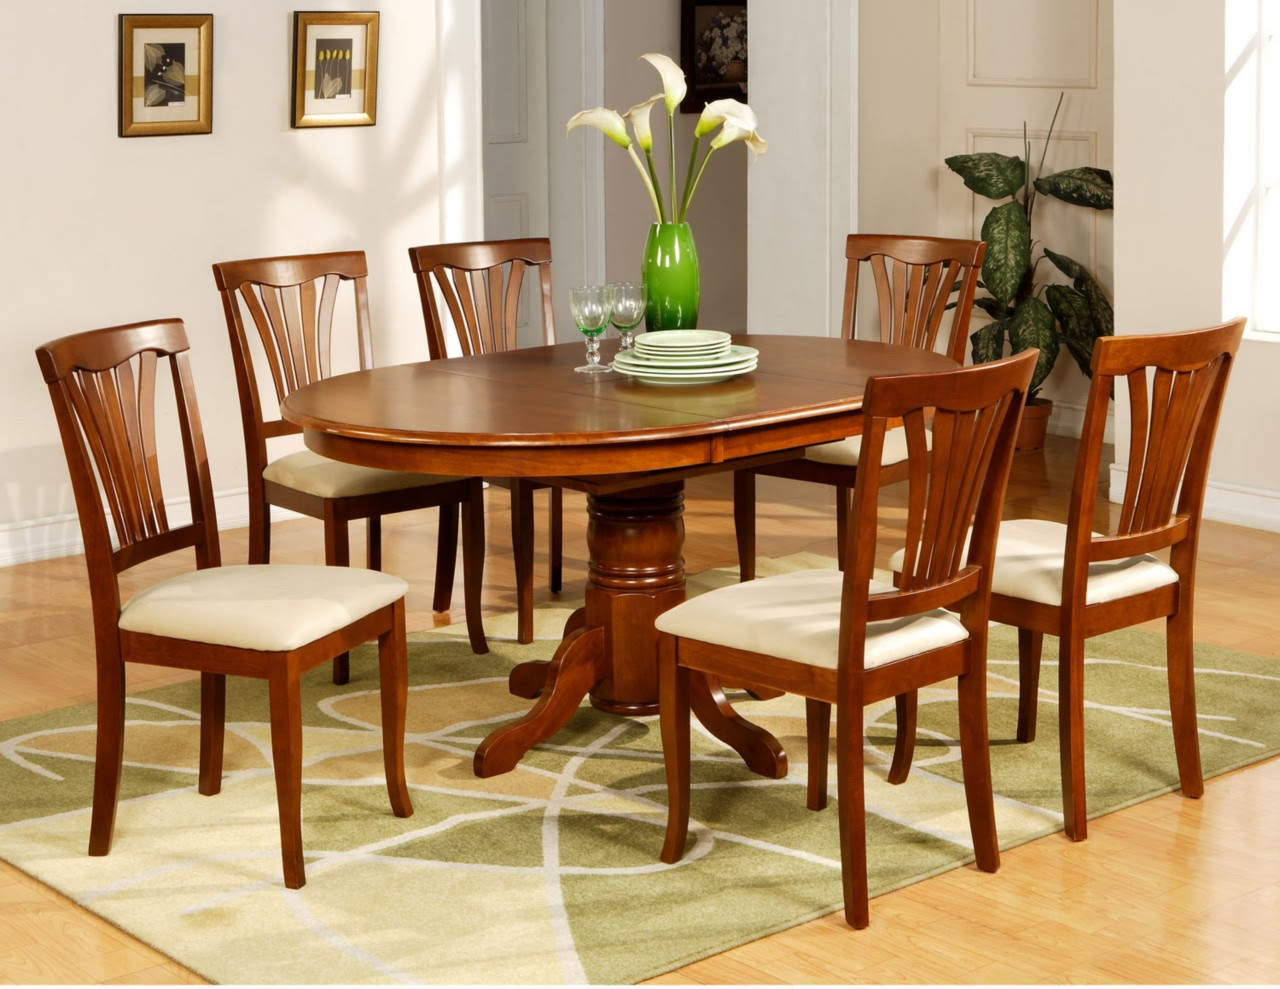 kitchen and dining chairs 2017 - Grasscloth Wallpaper